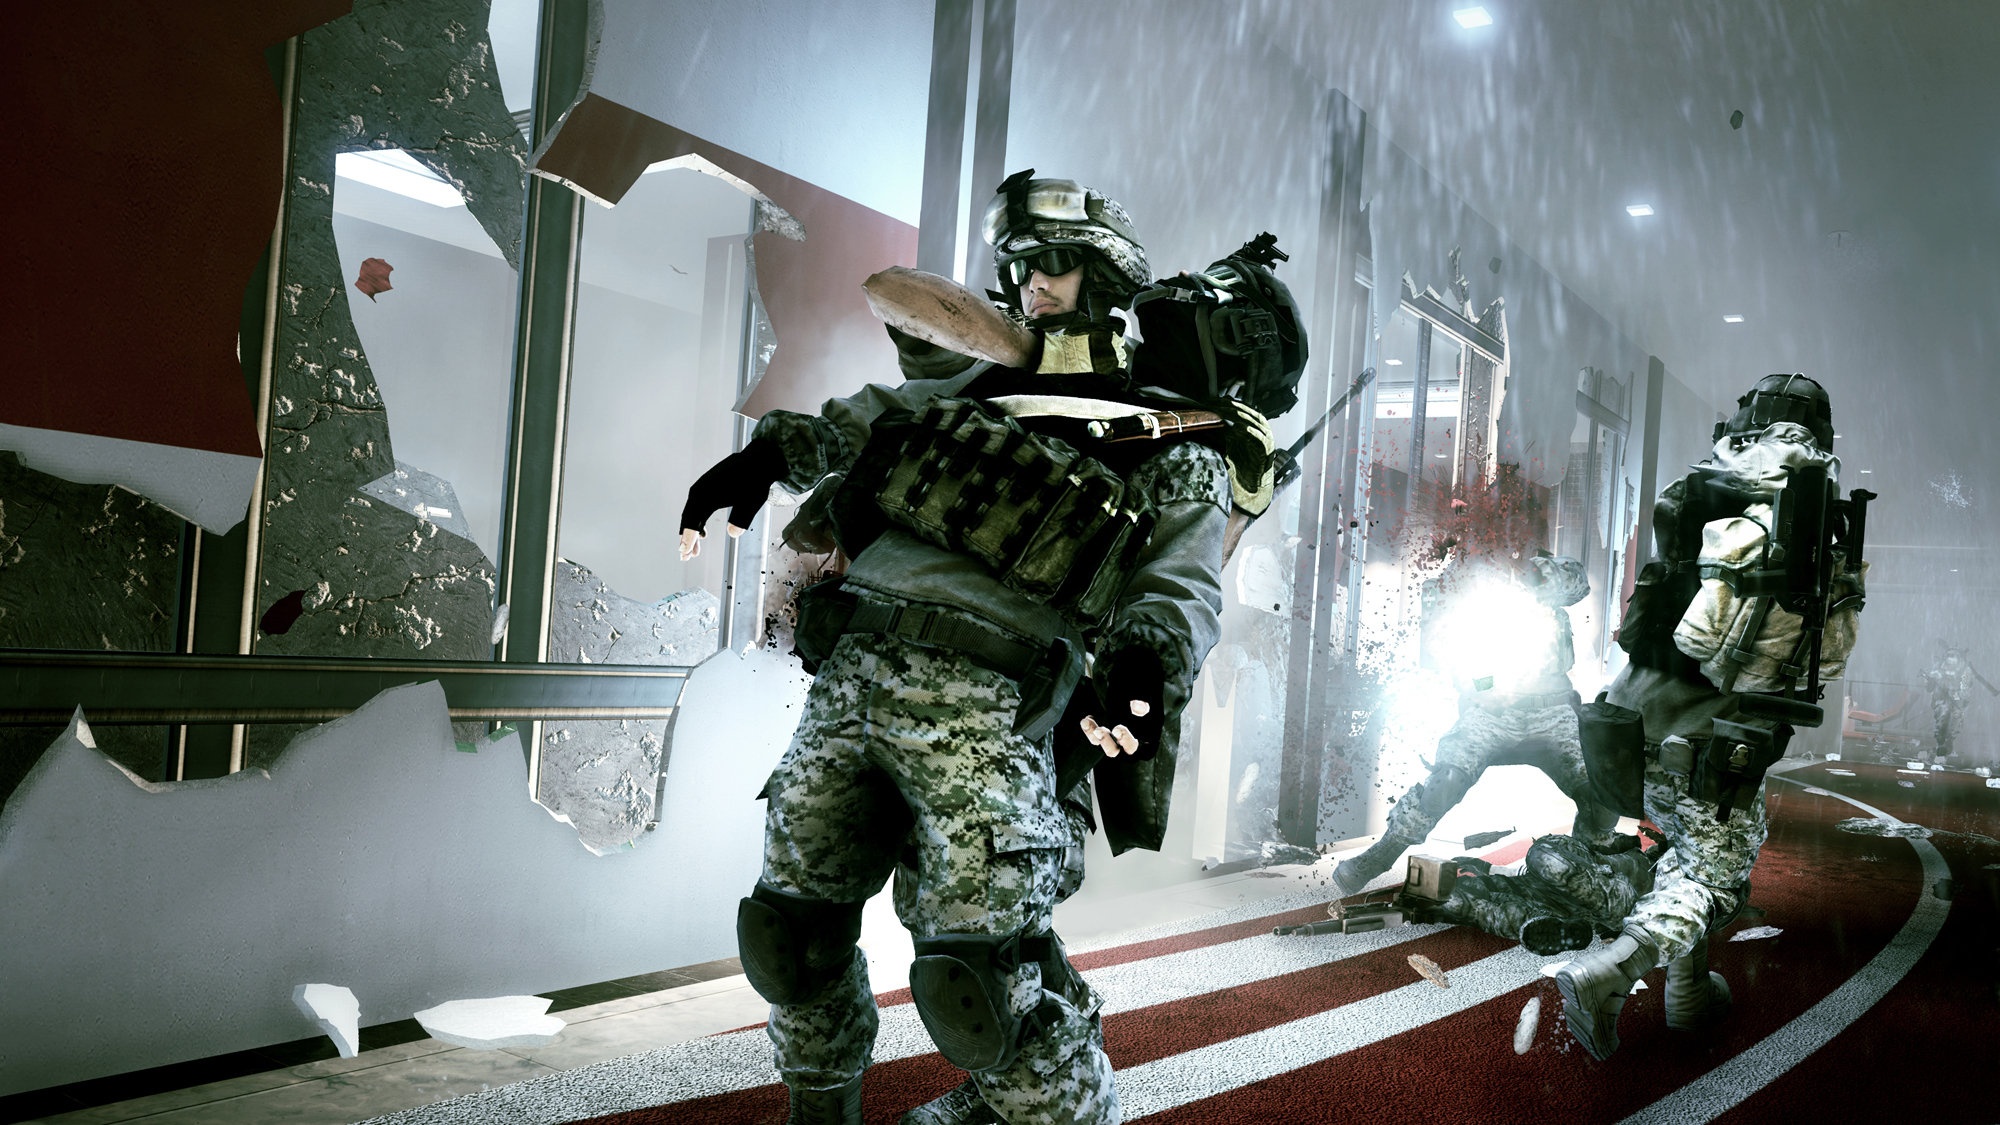 Battlefield 3 unveils Close Quarters Trailer and upcoming DLC